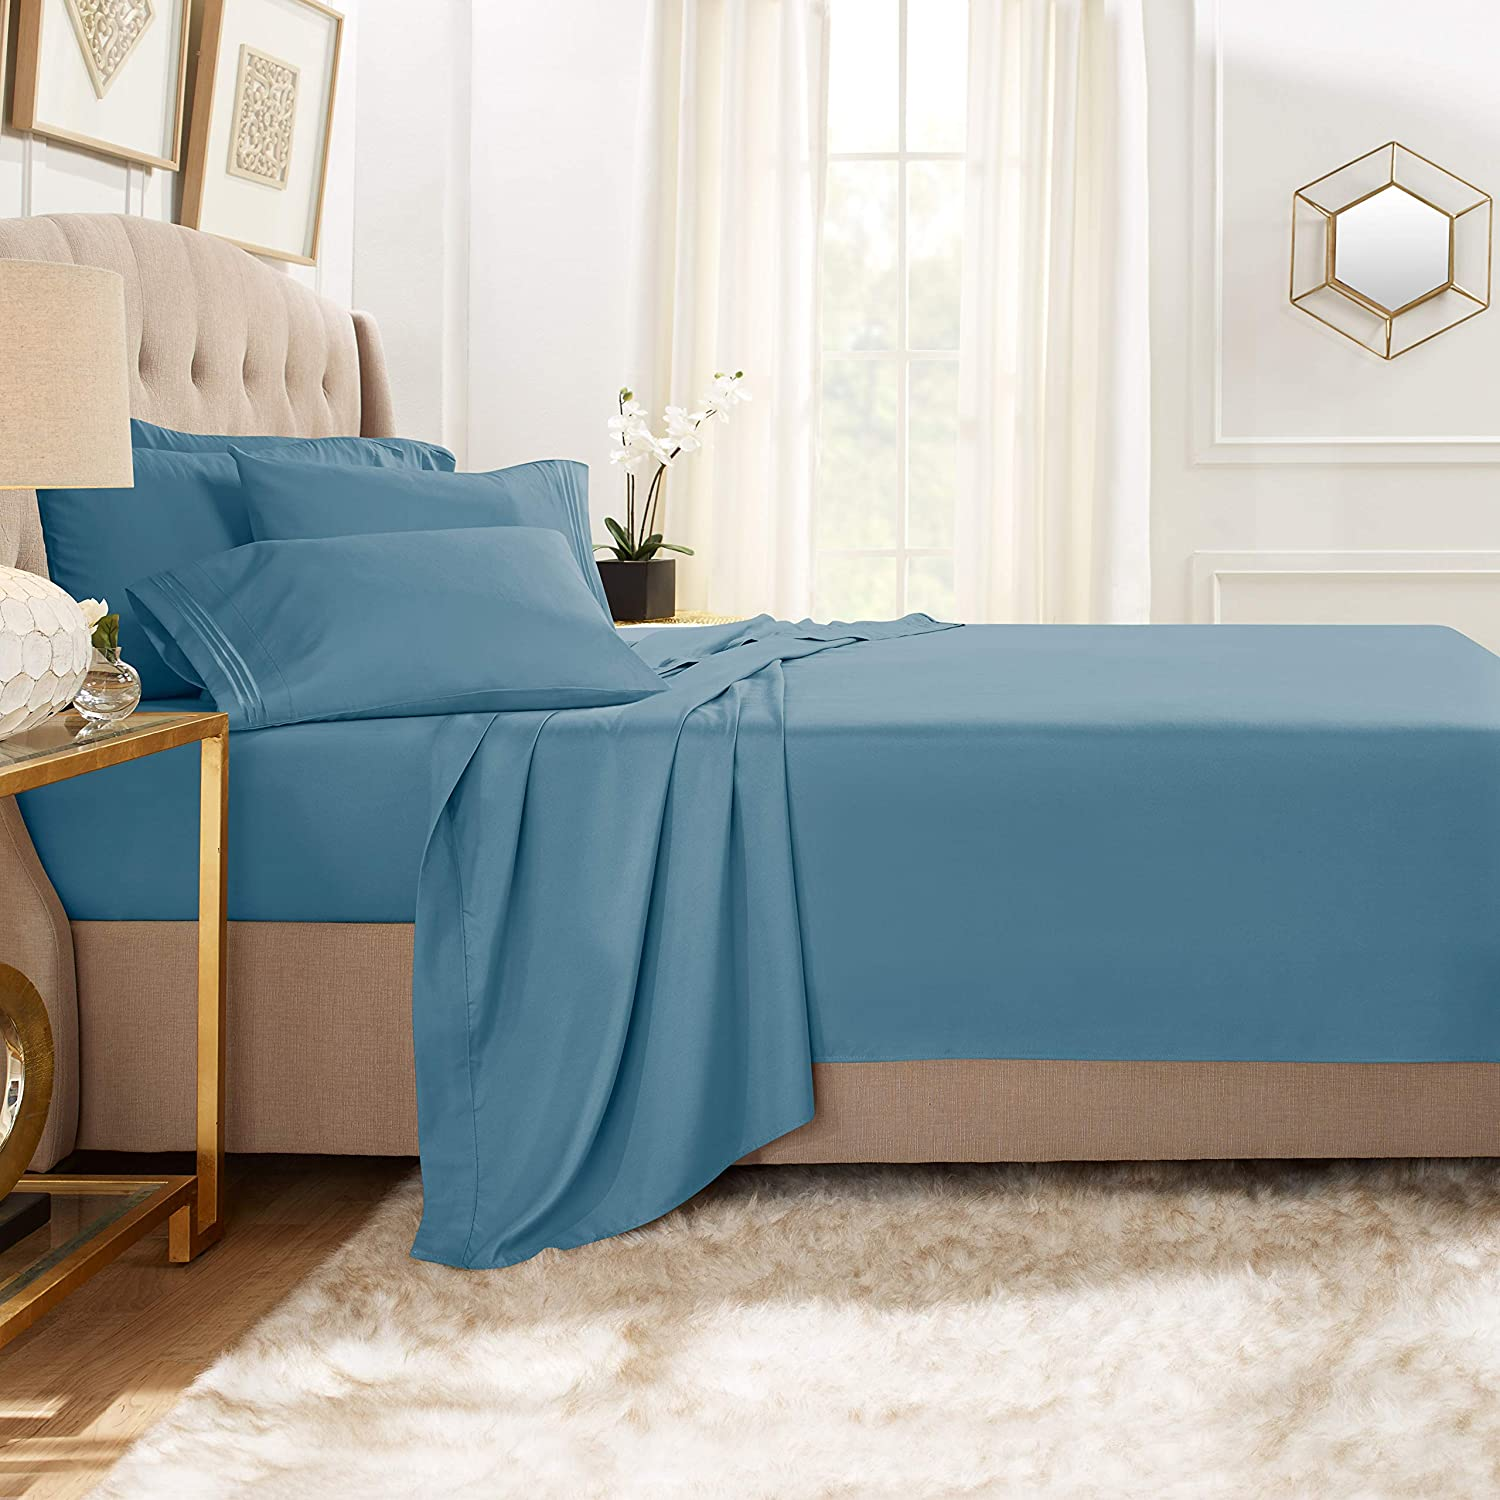 Clara Clark Premier 1800 Collection Bed Sheet Set with Extra Pillowcases Wrinkle, Fade & Stain Resistant, Twin XL, Blue Heaven